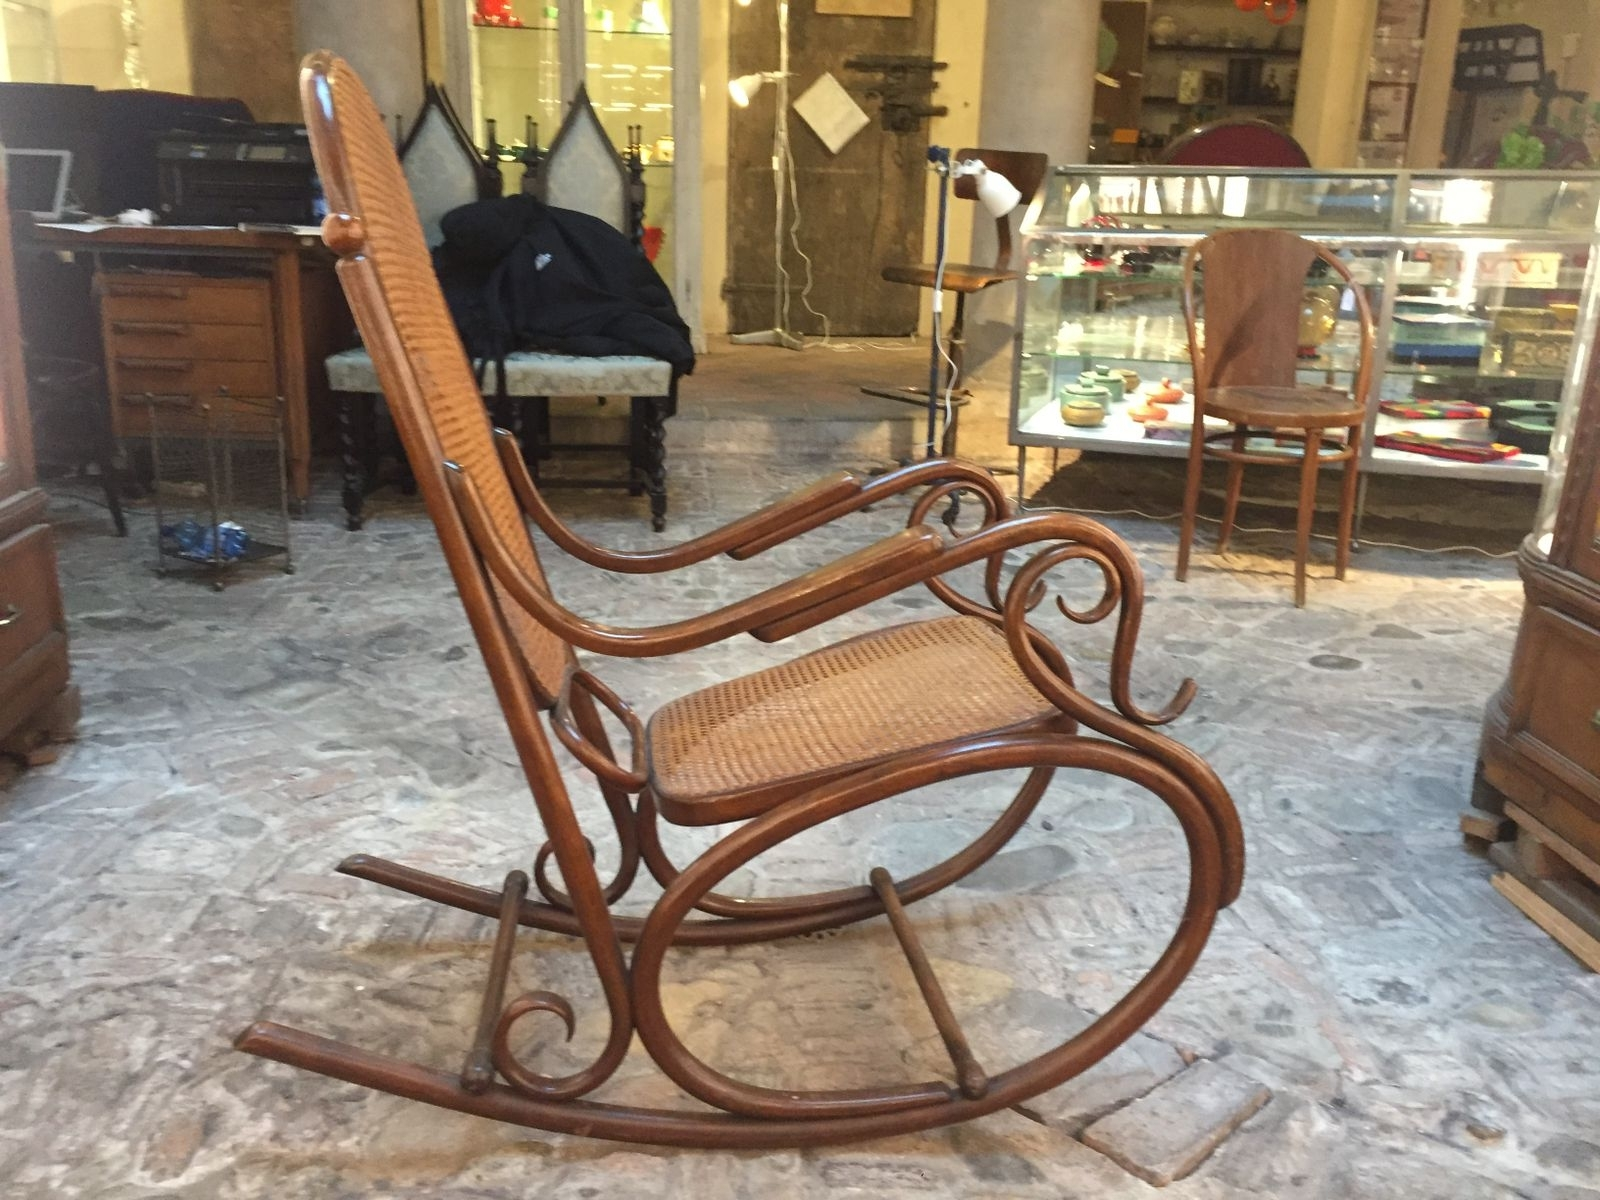 Antique Rocking Chair For Sale – Image Antique And Candle Throughout Well Known Antique Rocking Chairs (View 4 of 20)